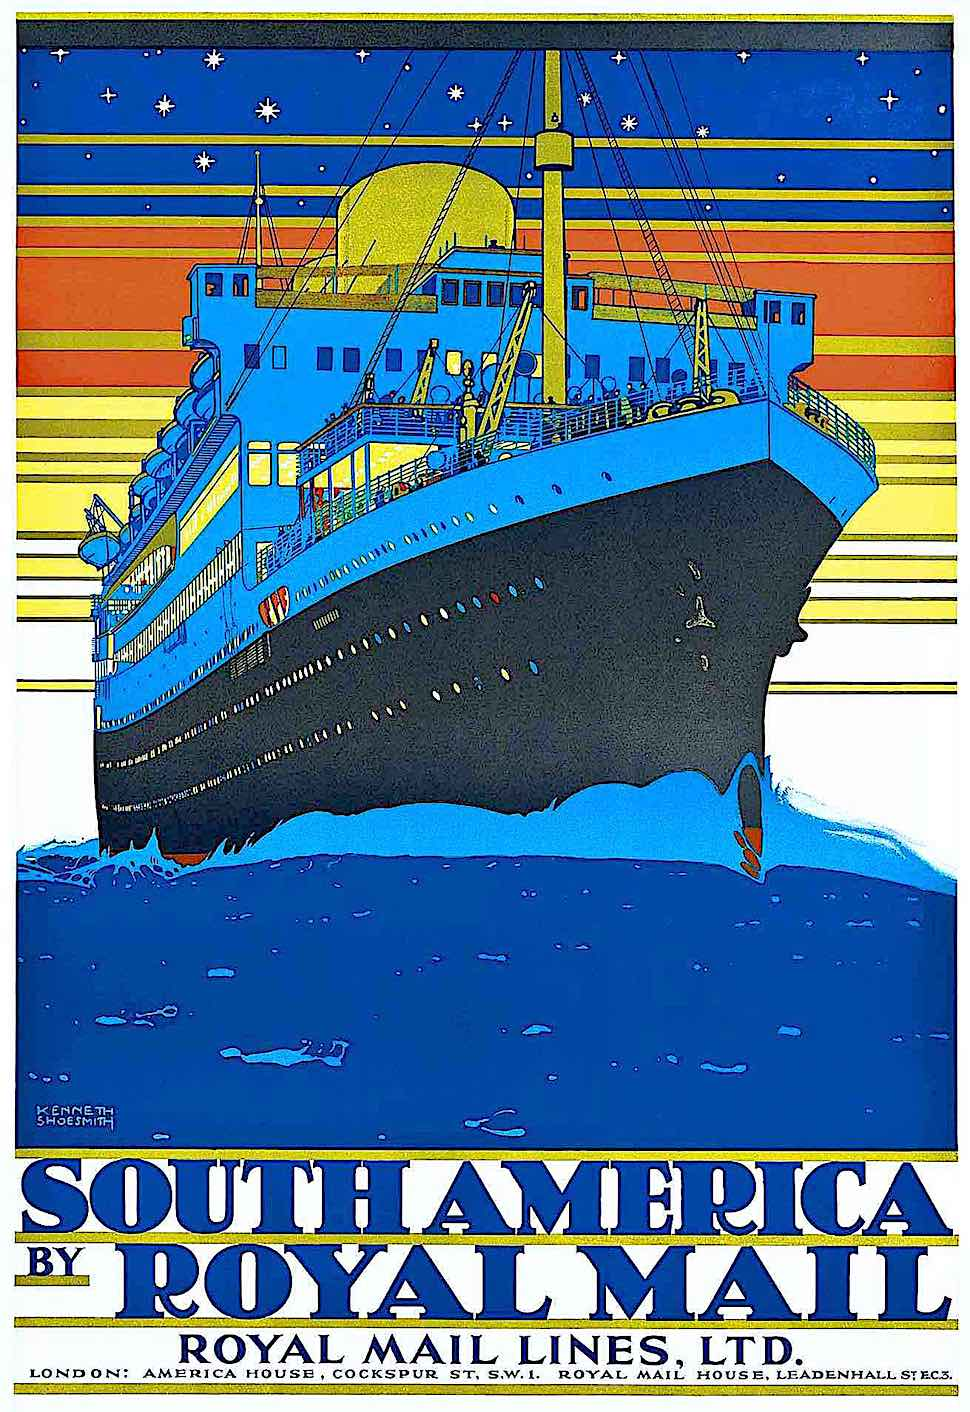 a Kenneth Shoesmith poster for Royal Mail Lines to South America in red blue and yellow